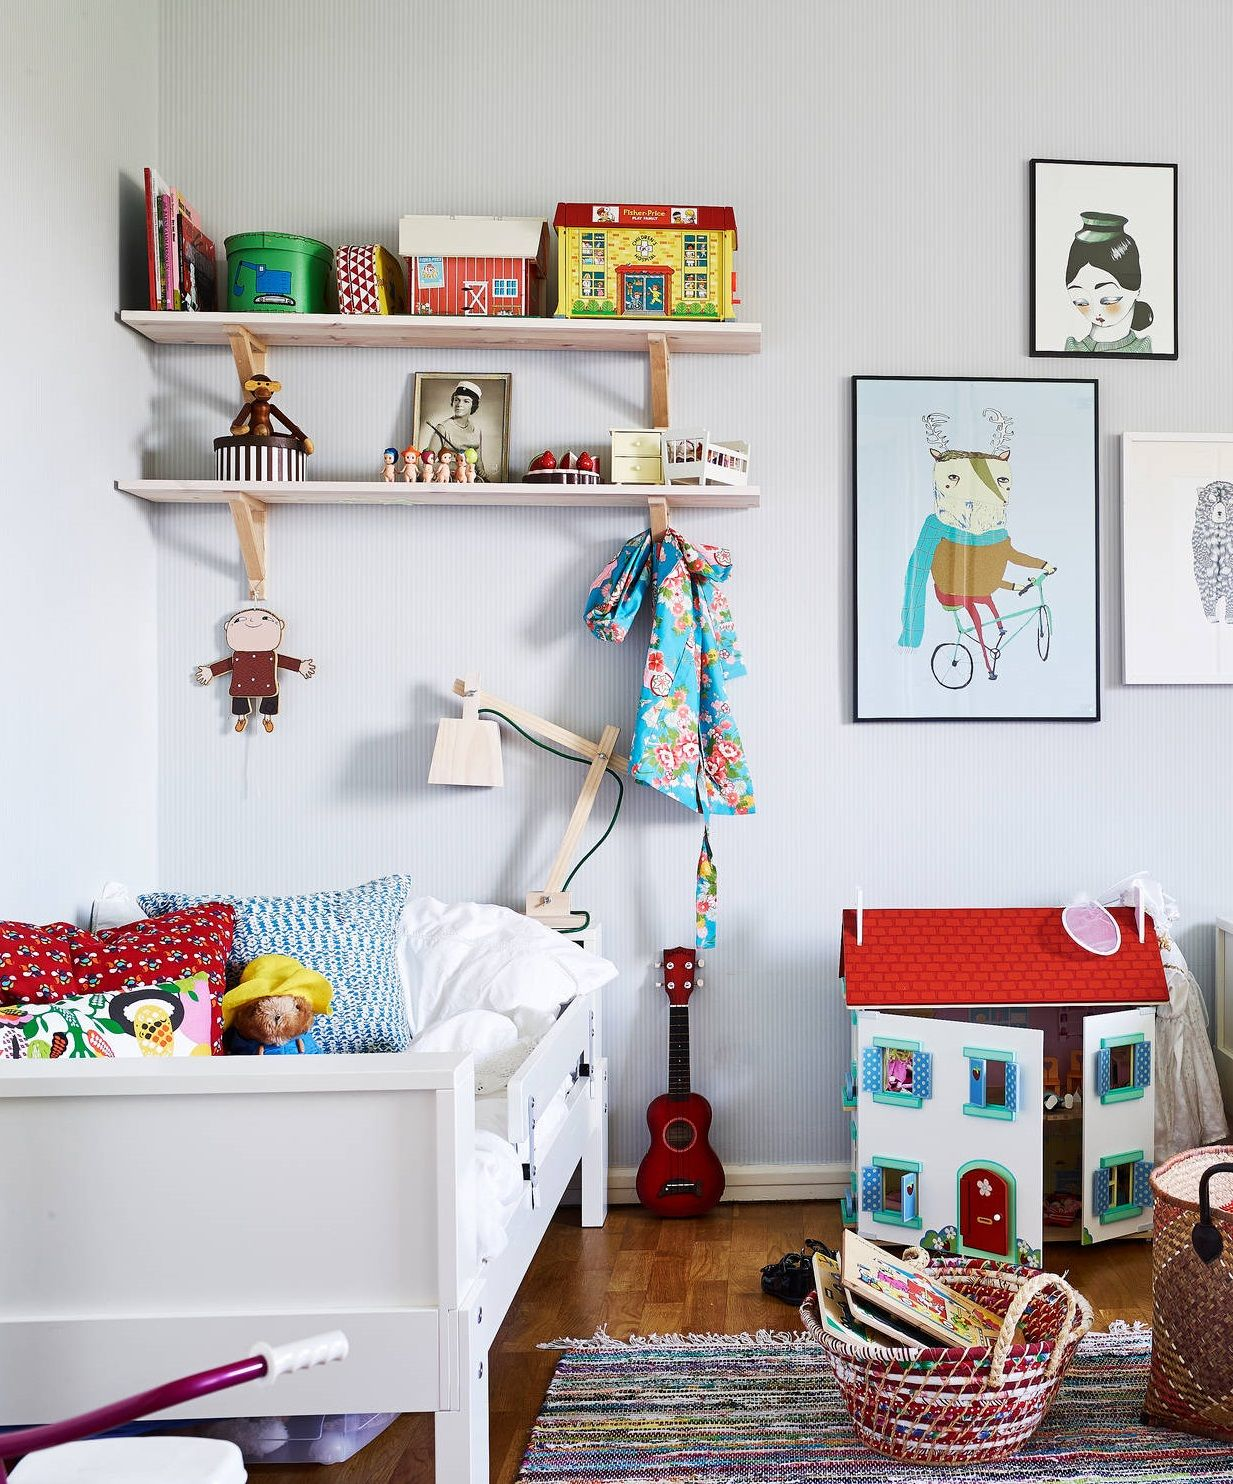 Children's room. Happy, colorful, retro toys, playful, wooden shelves and floors.